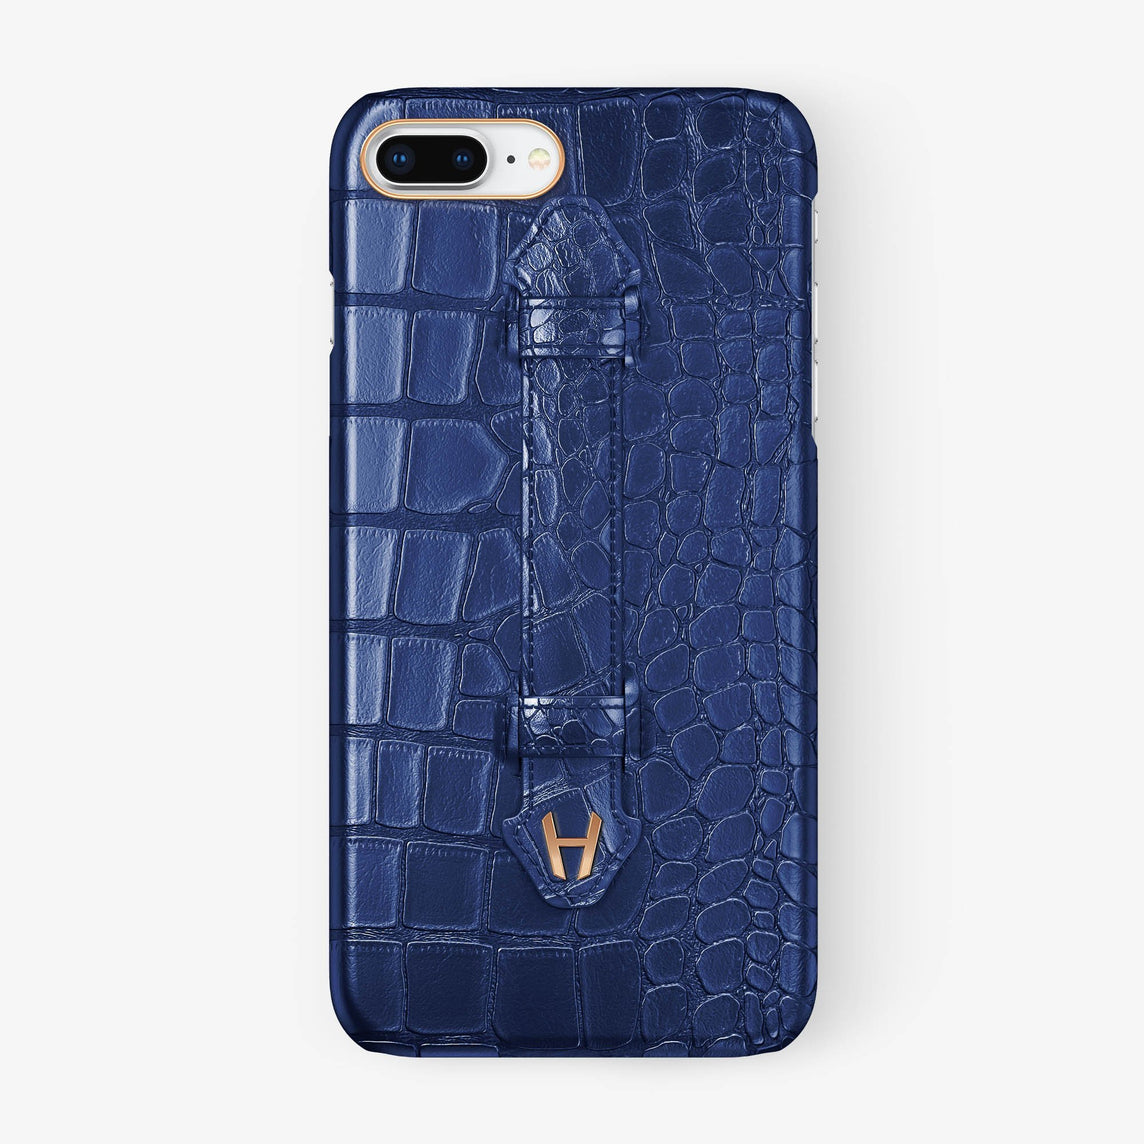 Navy Blue Alligator iPhone Finger Case for iPhone 7/8 Plus finishing rose gold - Hadoro Luxury Cases